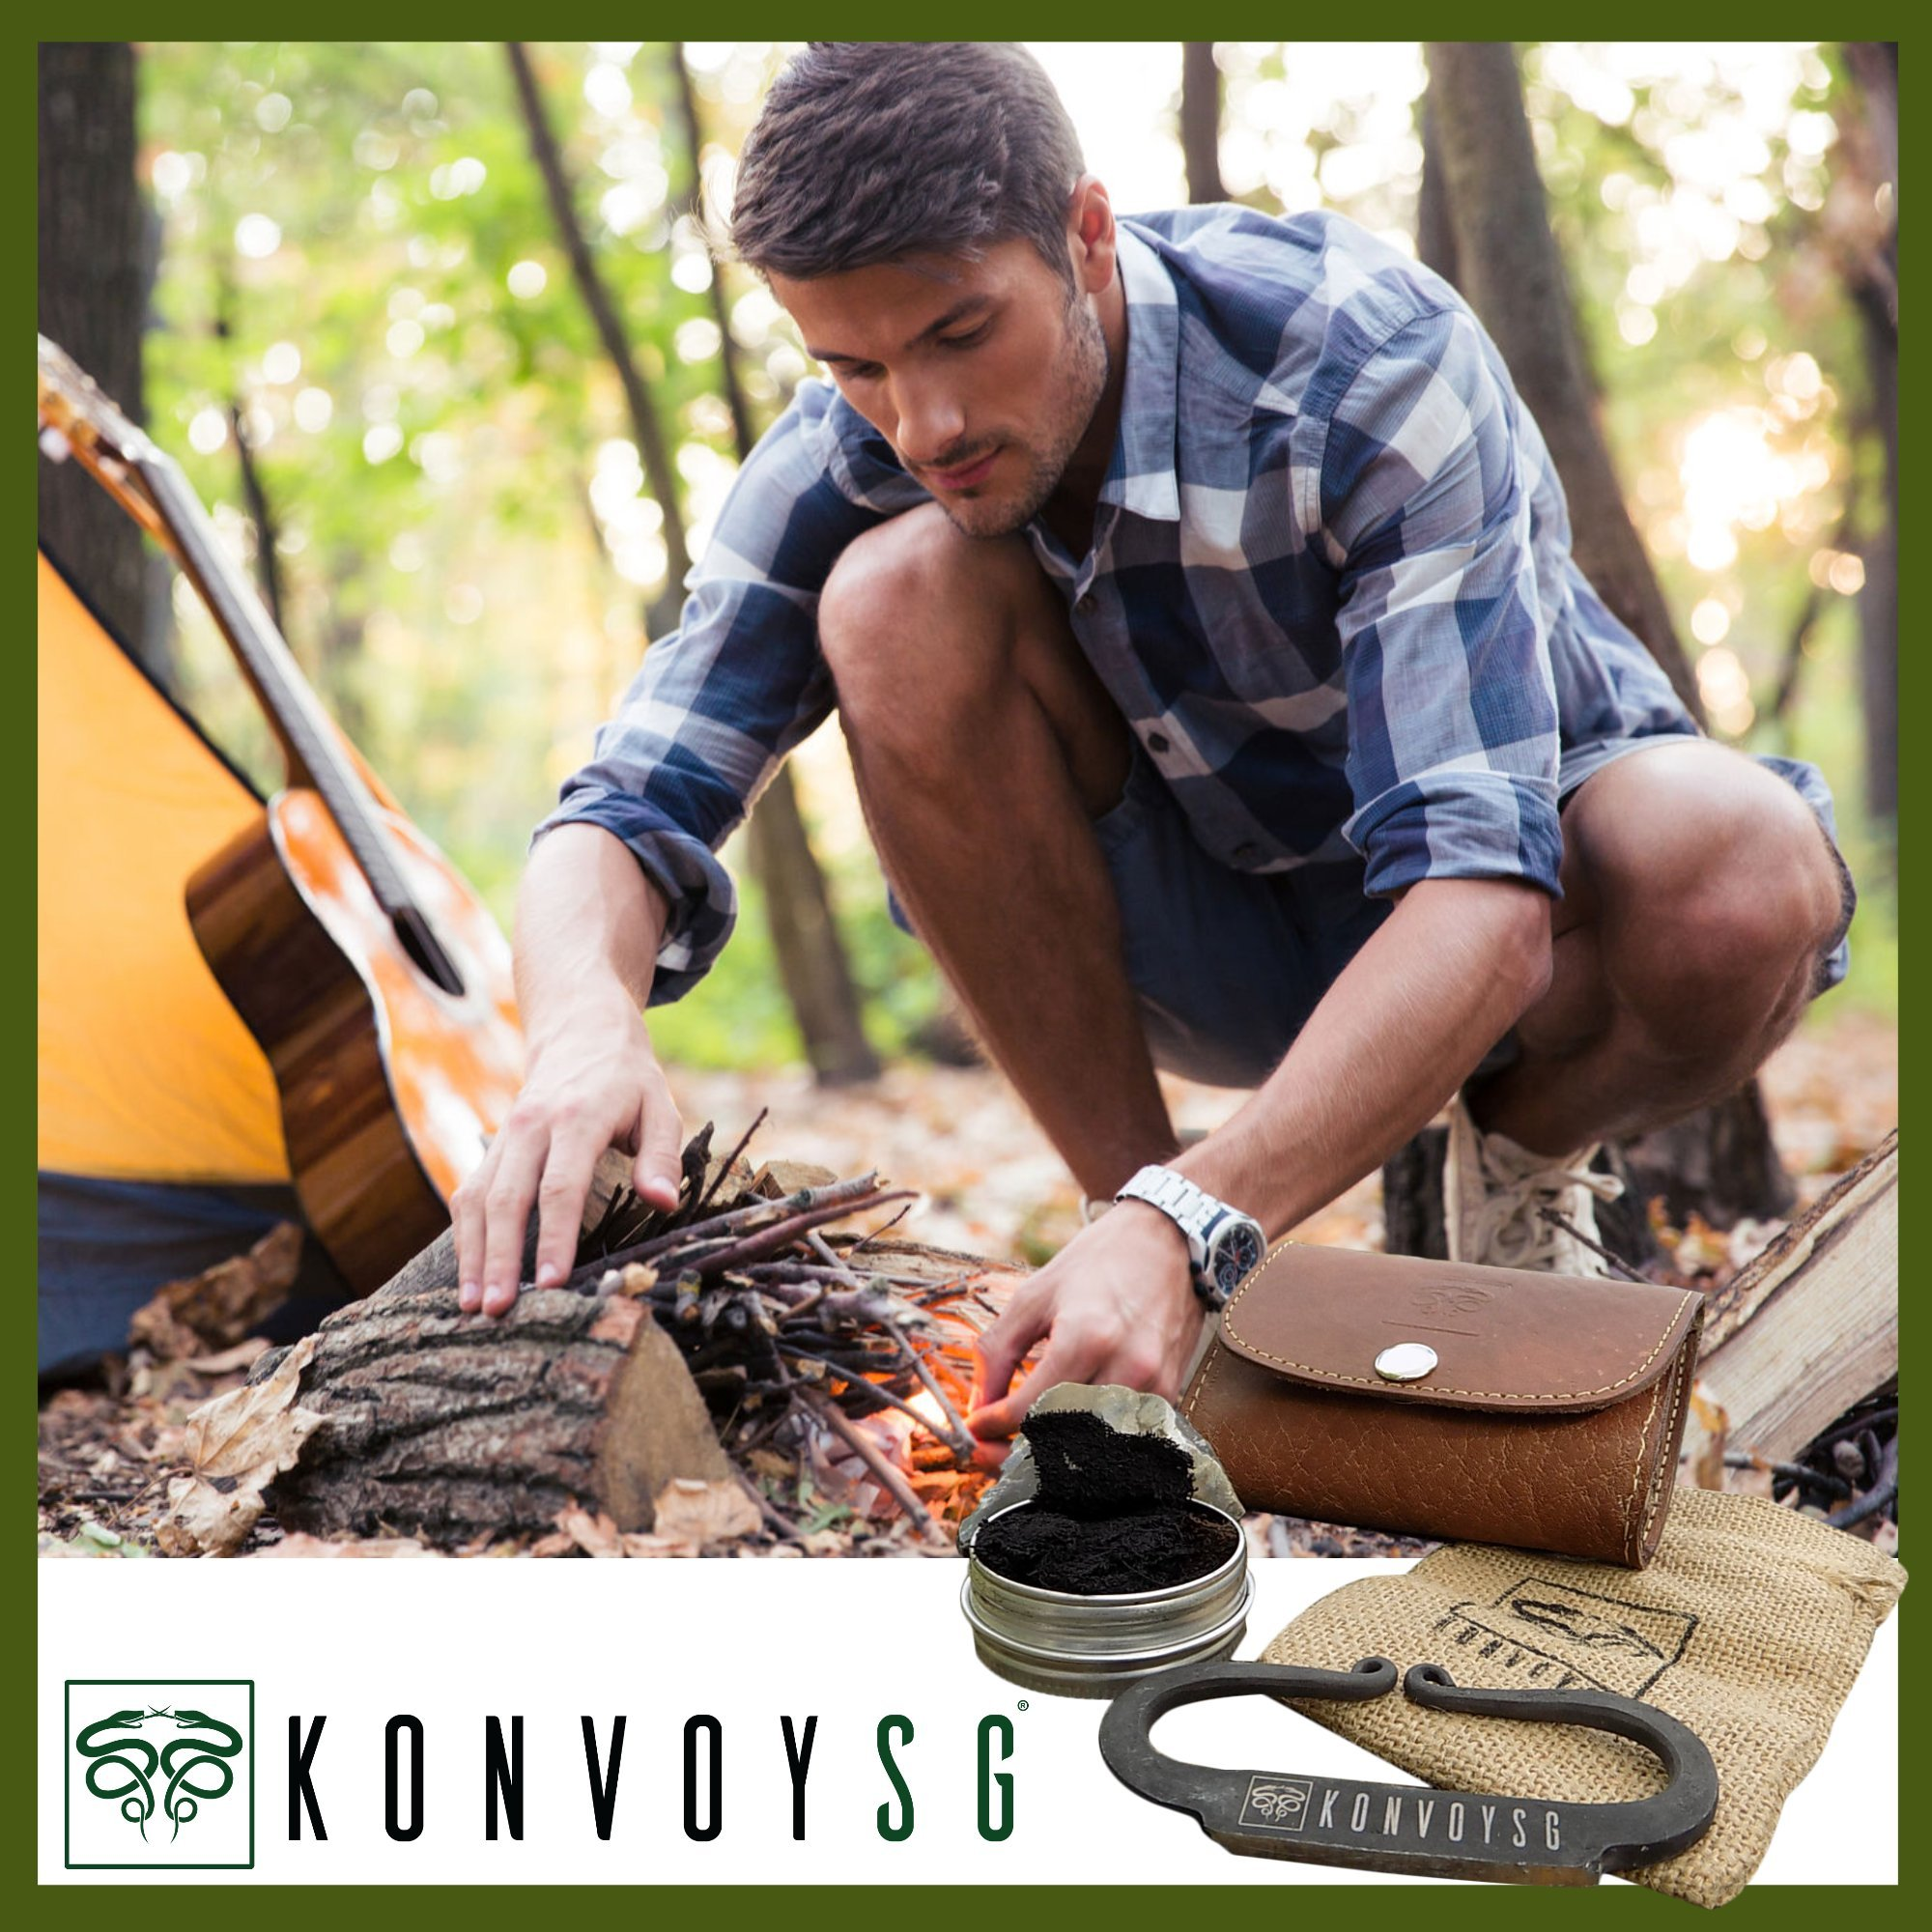 KonvoySG Flint and Steel Kit. Fire Striker, English Flint Stone & Char Cloth Traditional Hand Forged Fire Starter with a Leather Gift Pouch and Emergency Tinder Jute Bag (Coyote Brown) by KonvoySG (Image #2)